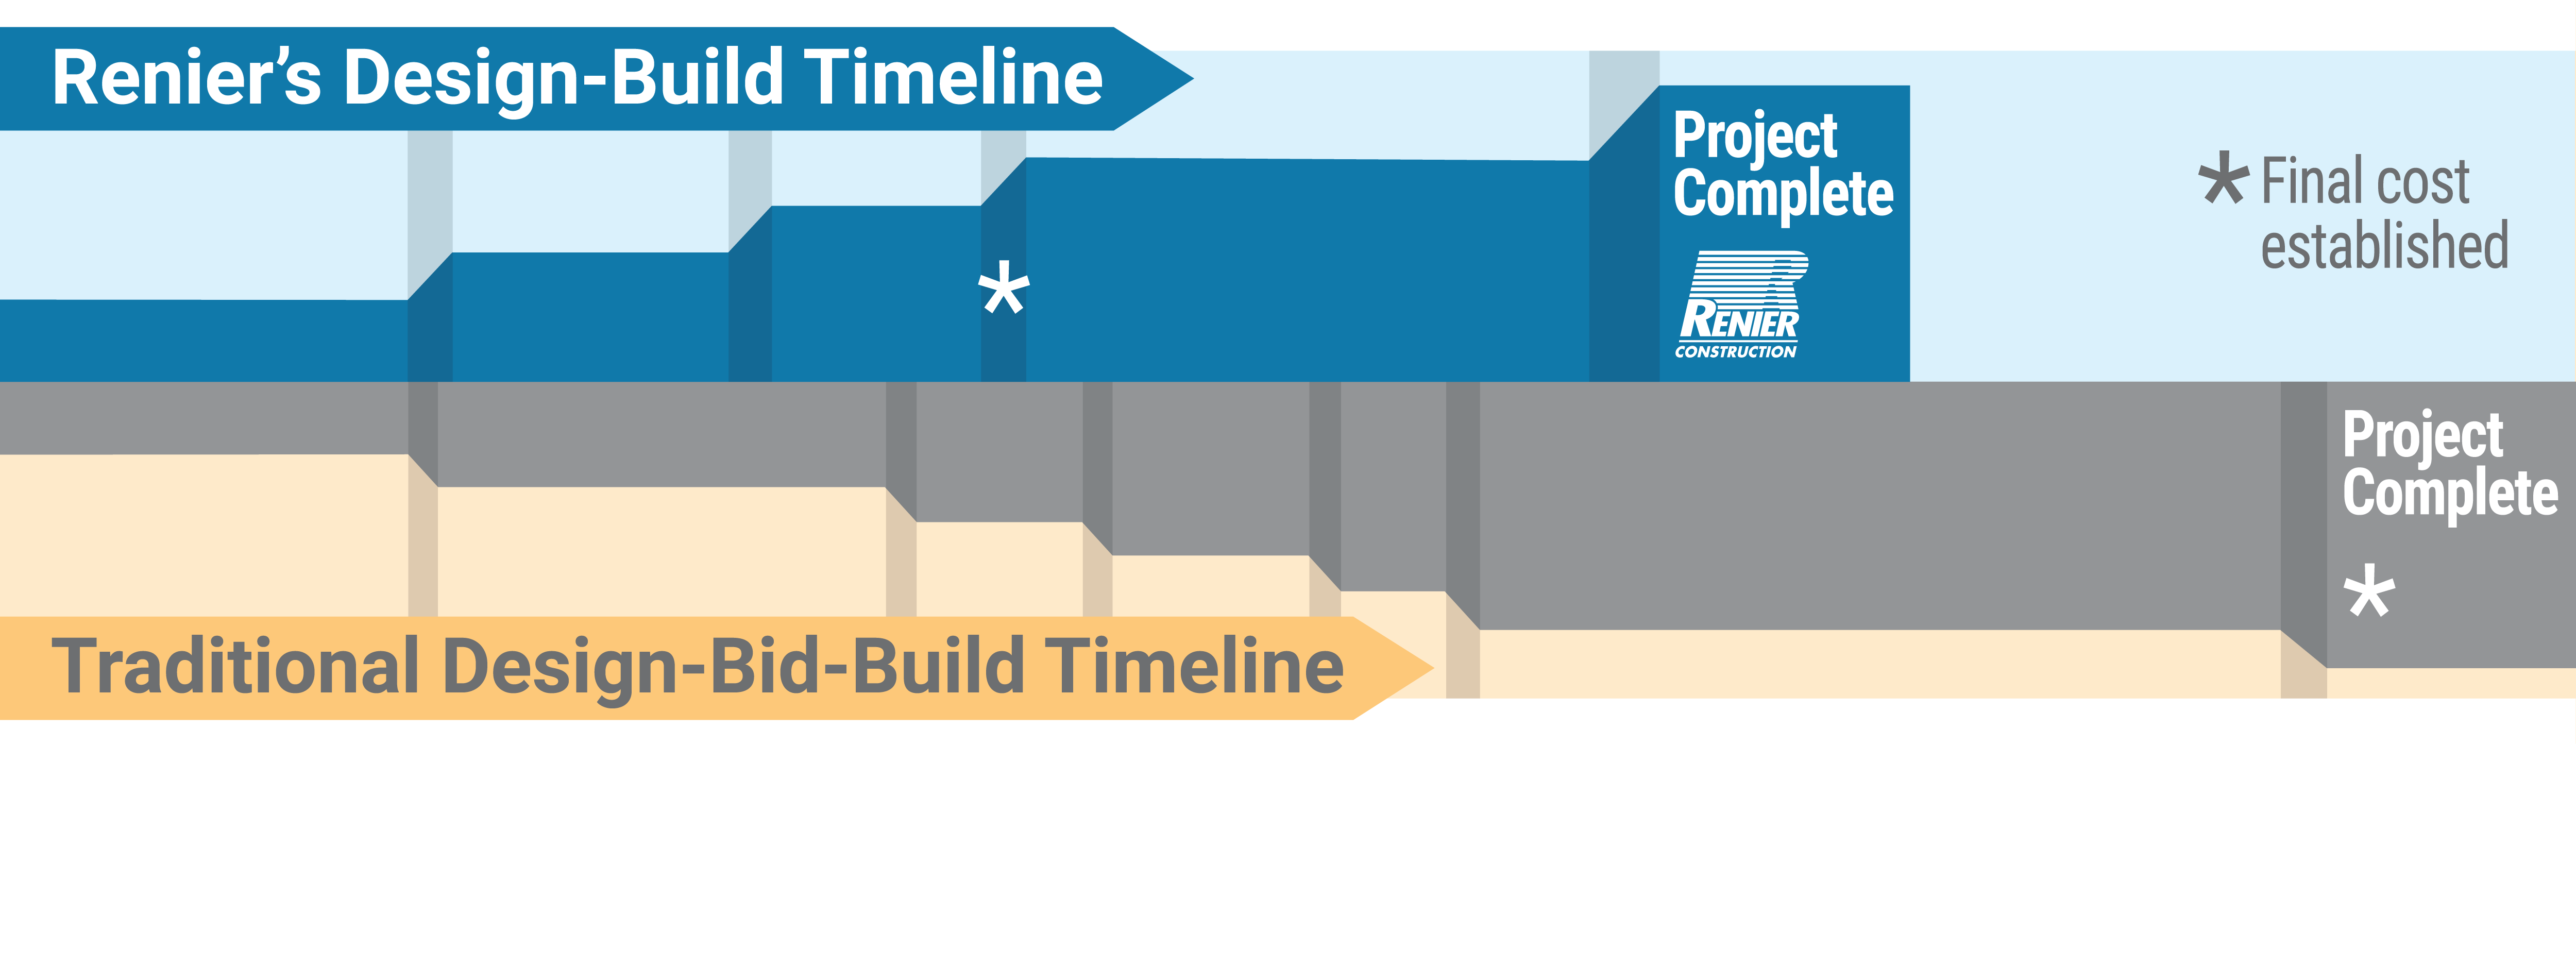 Renier's Design-Build process allows for improved quality and controlled costs, faster project delivery and reduced risk,